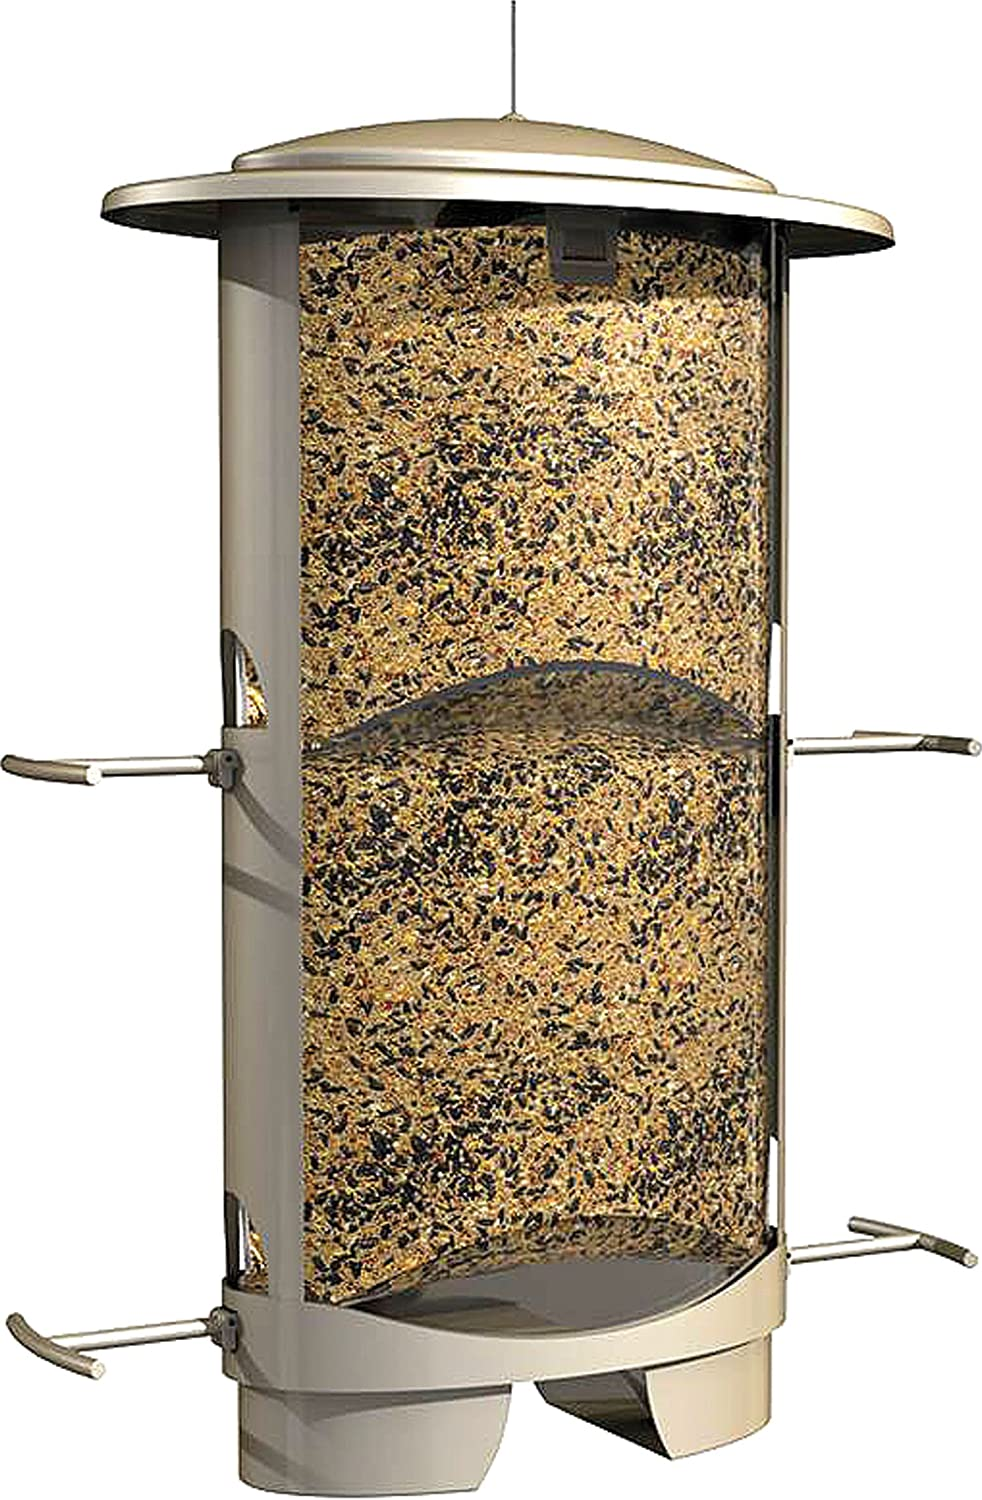 classic backyard feeder absolute bird brome products squirrel centre proof